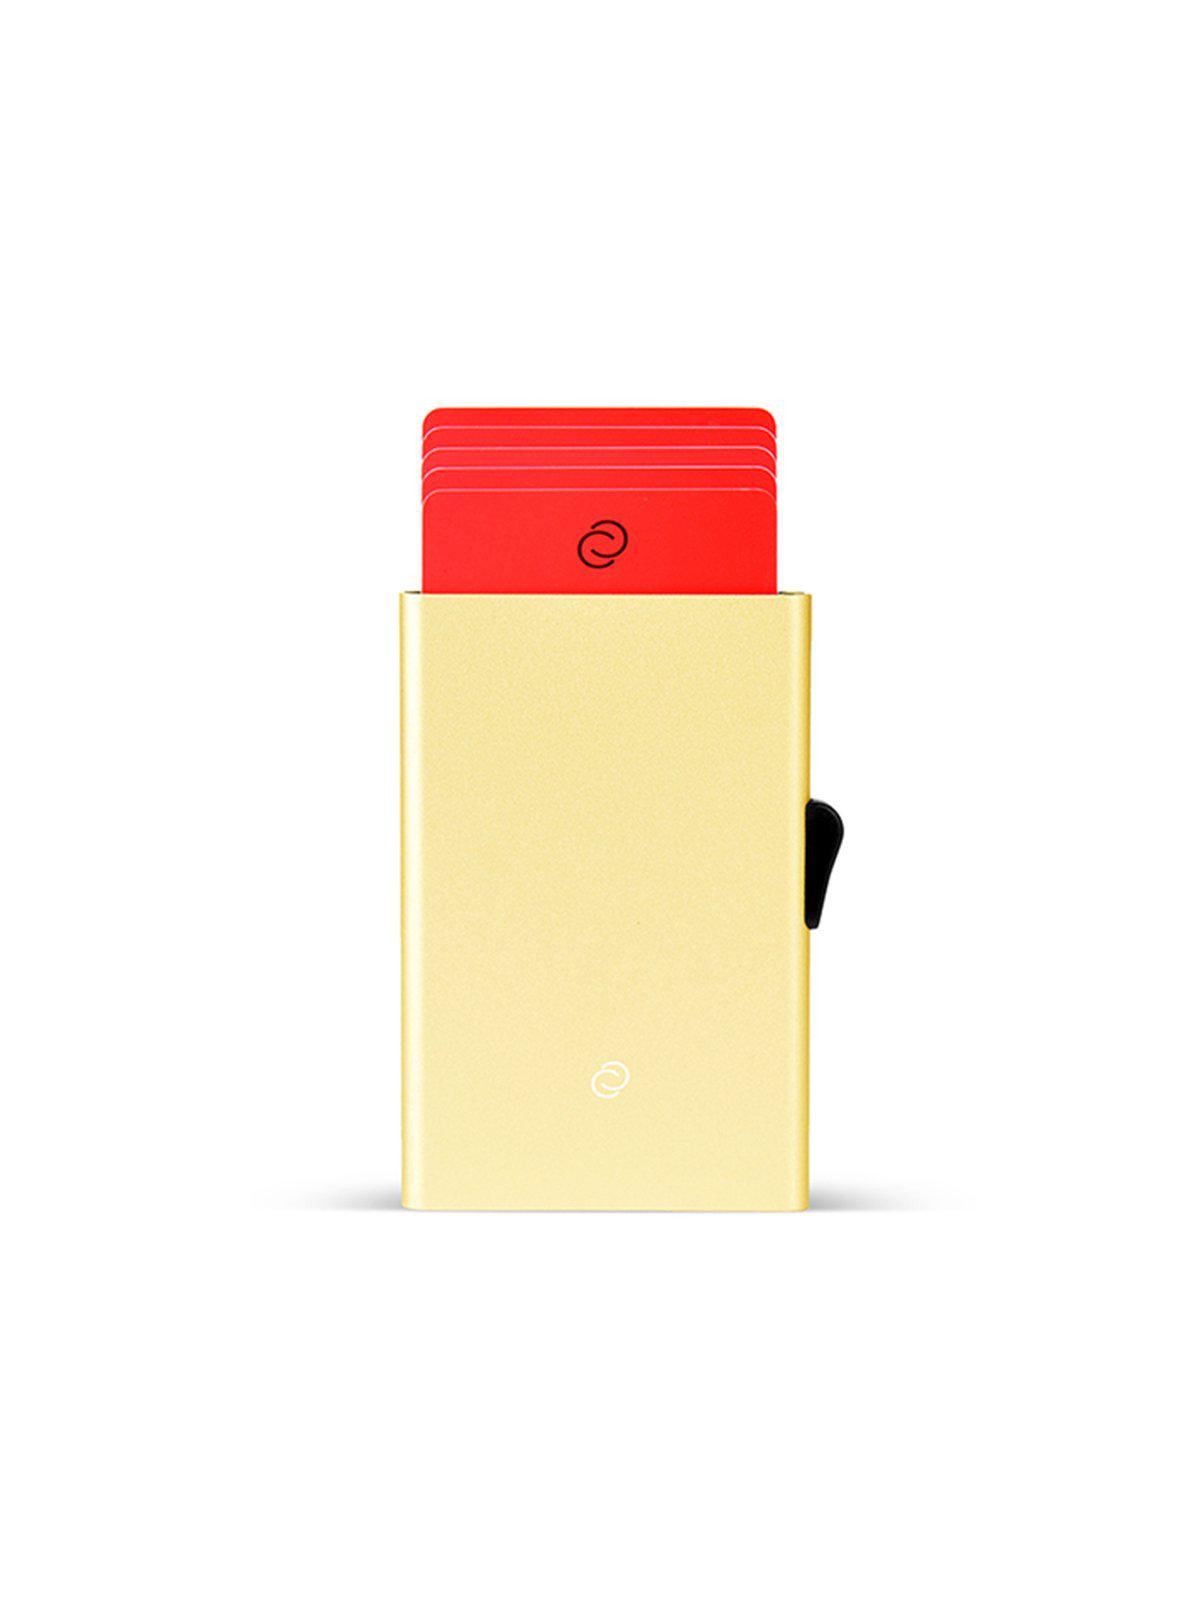 C-Secure Aluminium RFID Cardholder Champagne Gold - MORE by Morello Indonesia